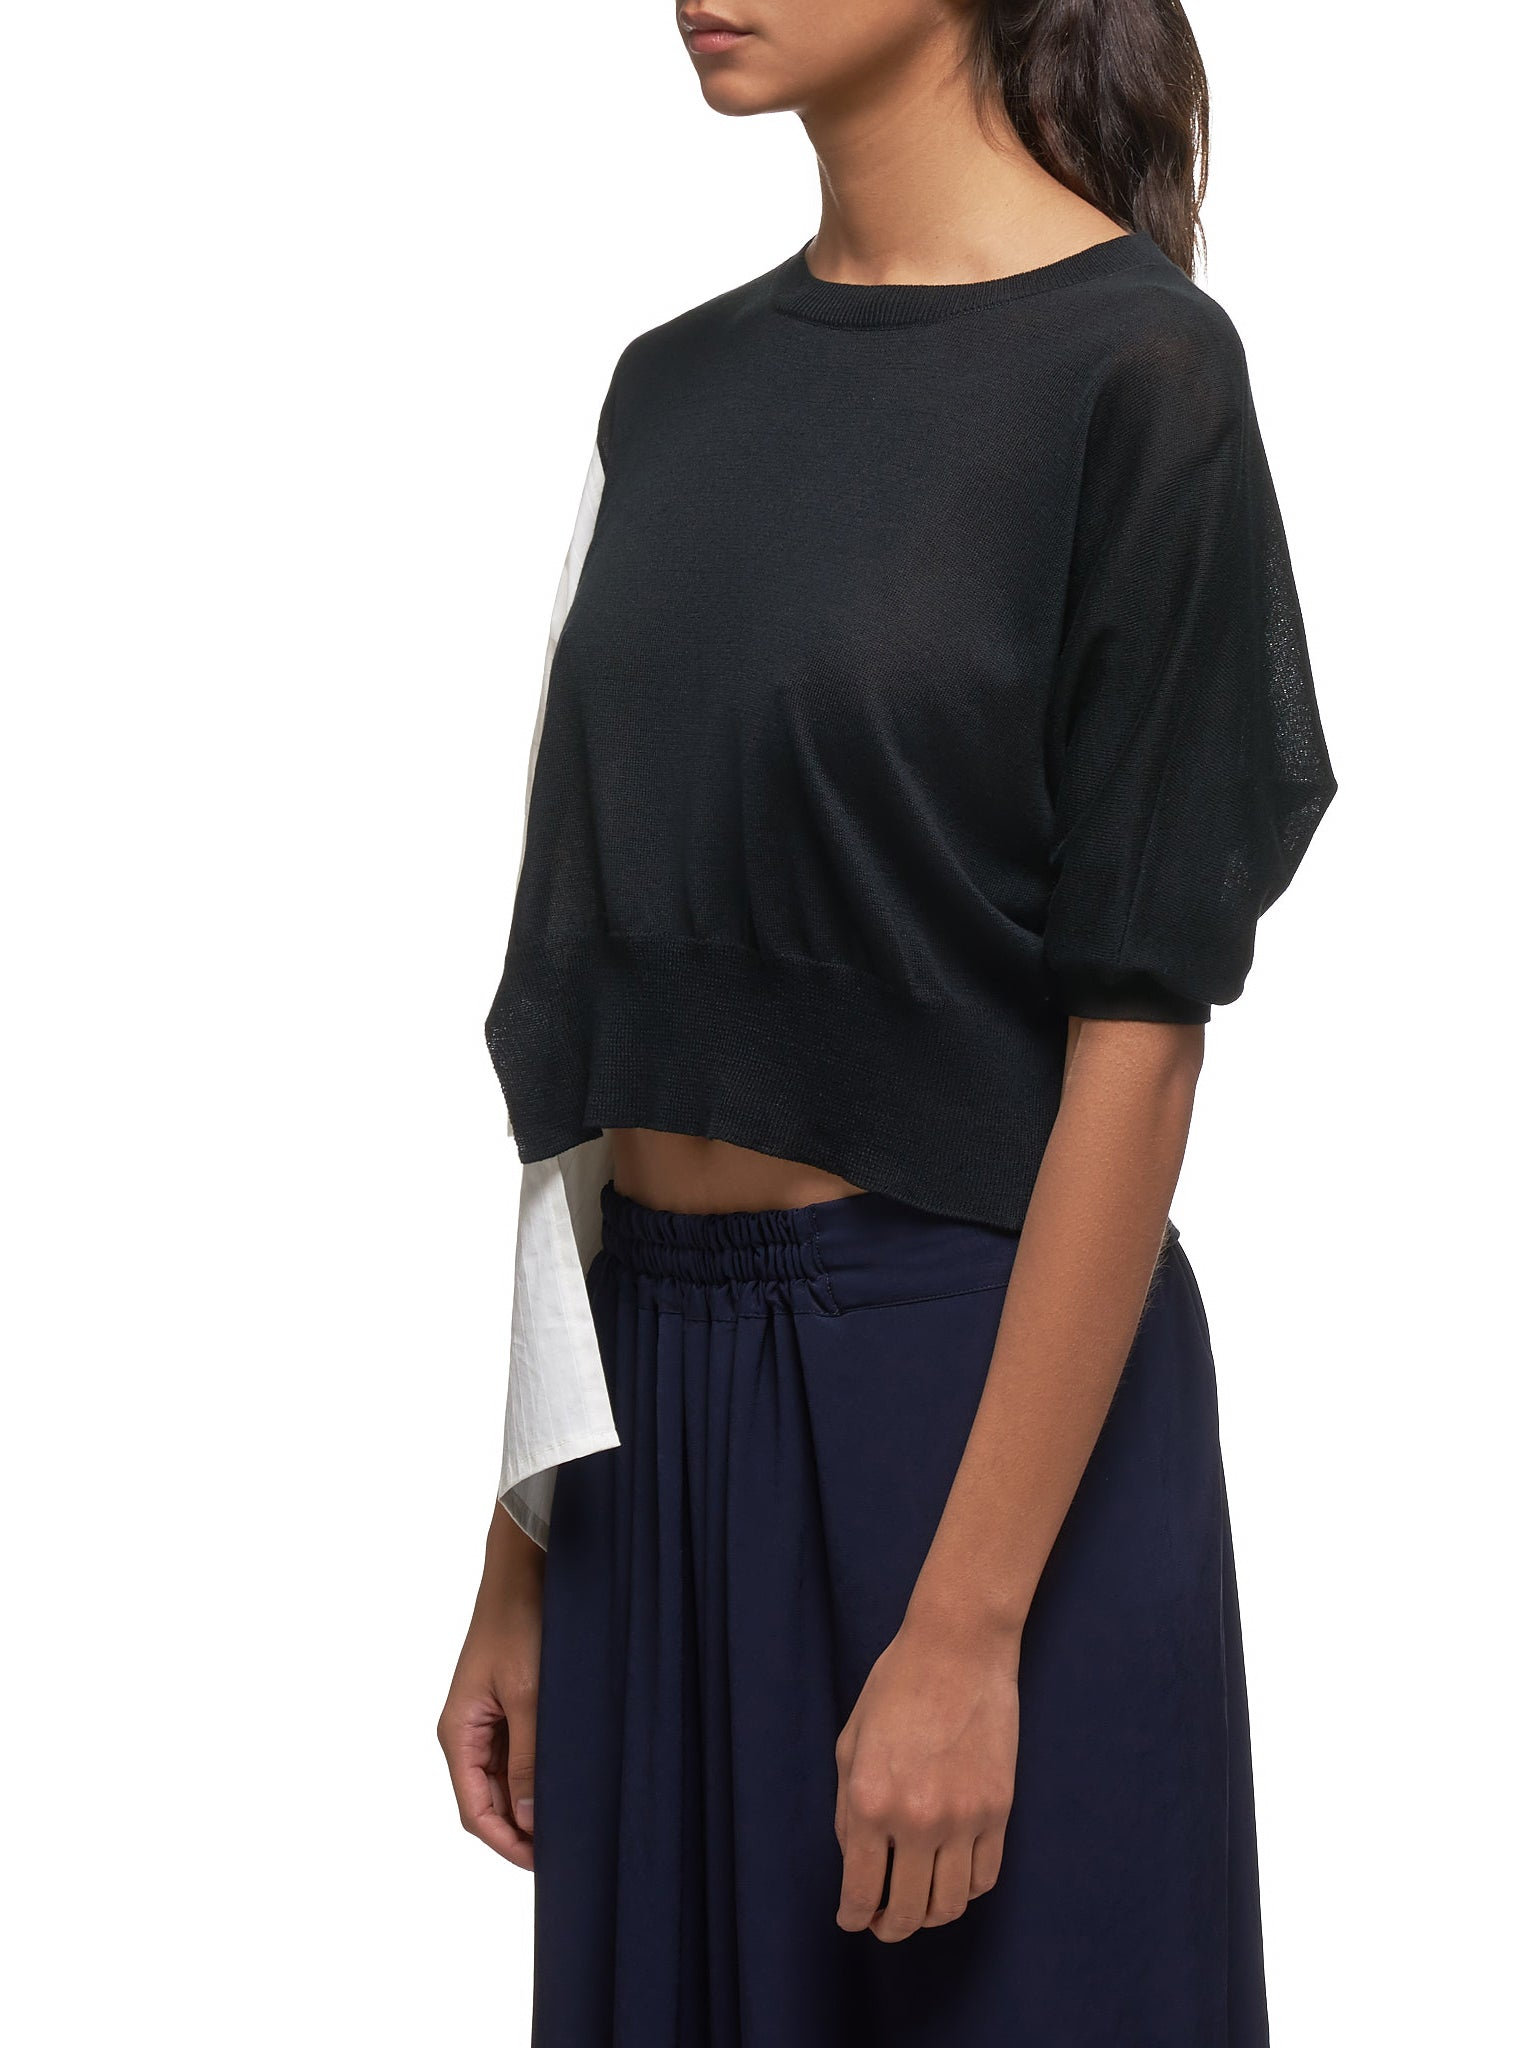 Asymmetrical Cropped Shirt (YS-K81-247-BLACK)